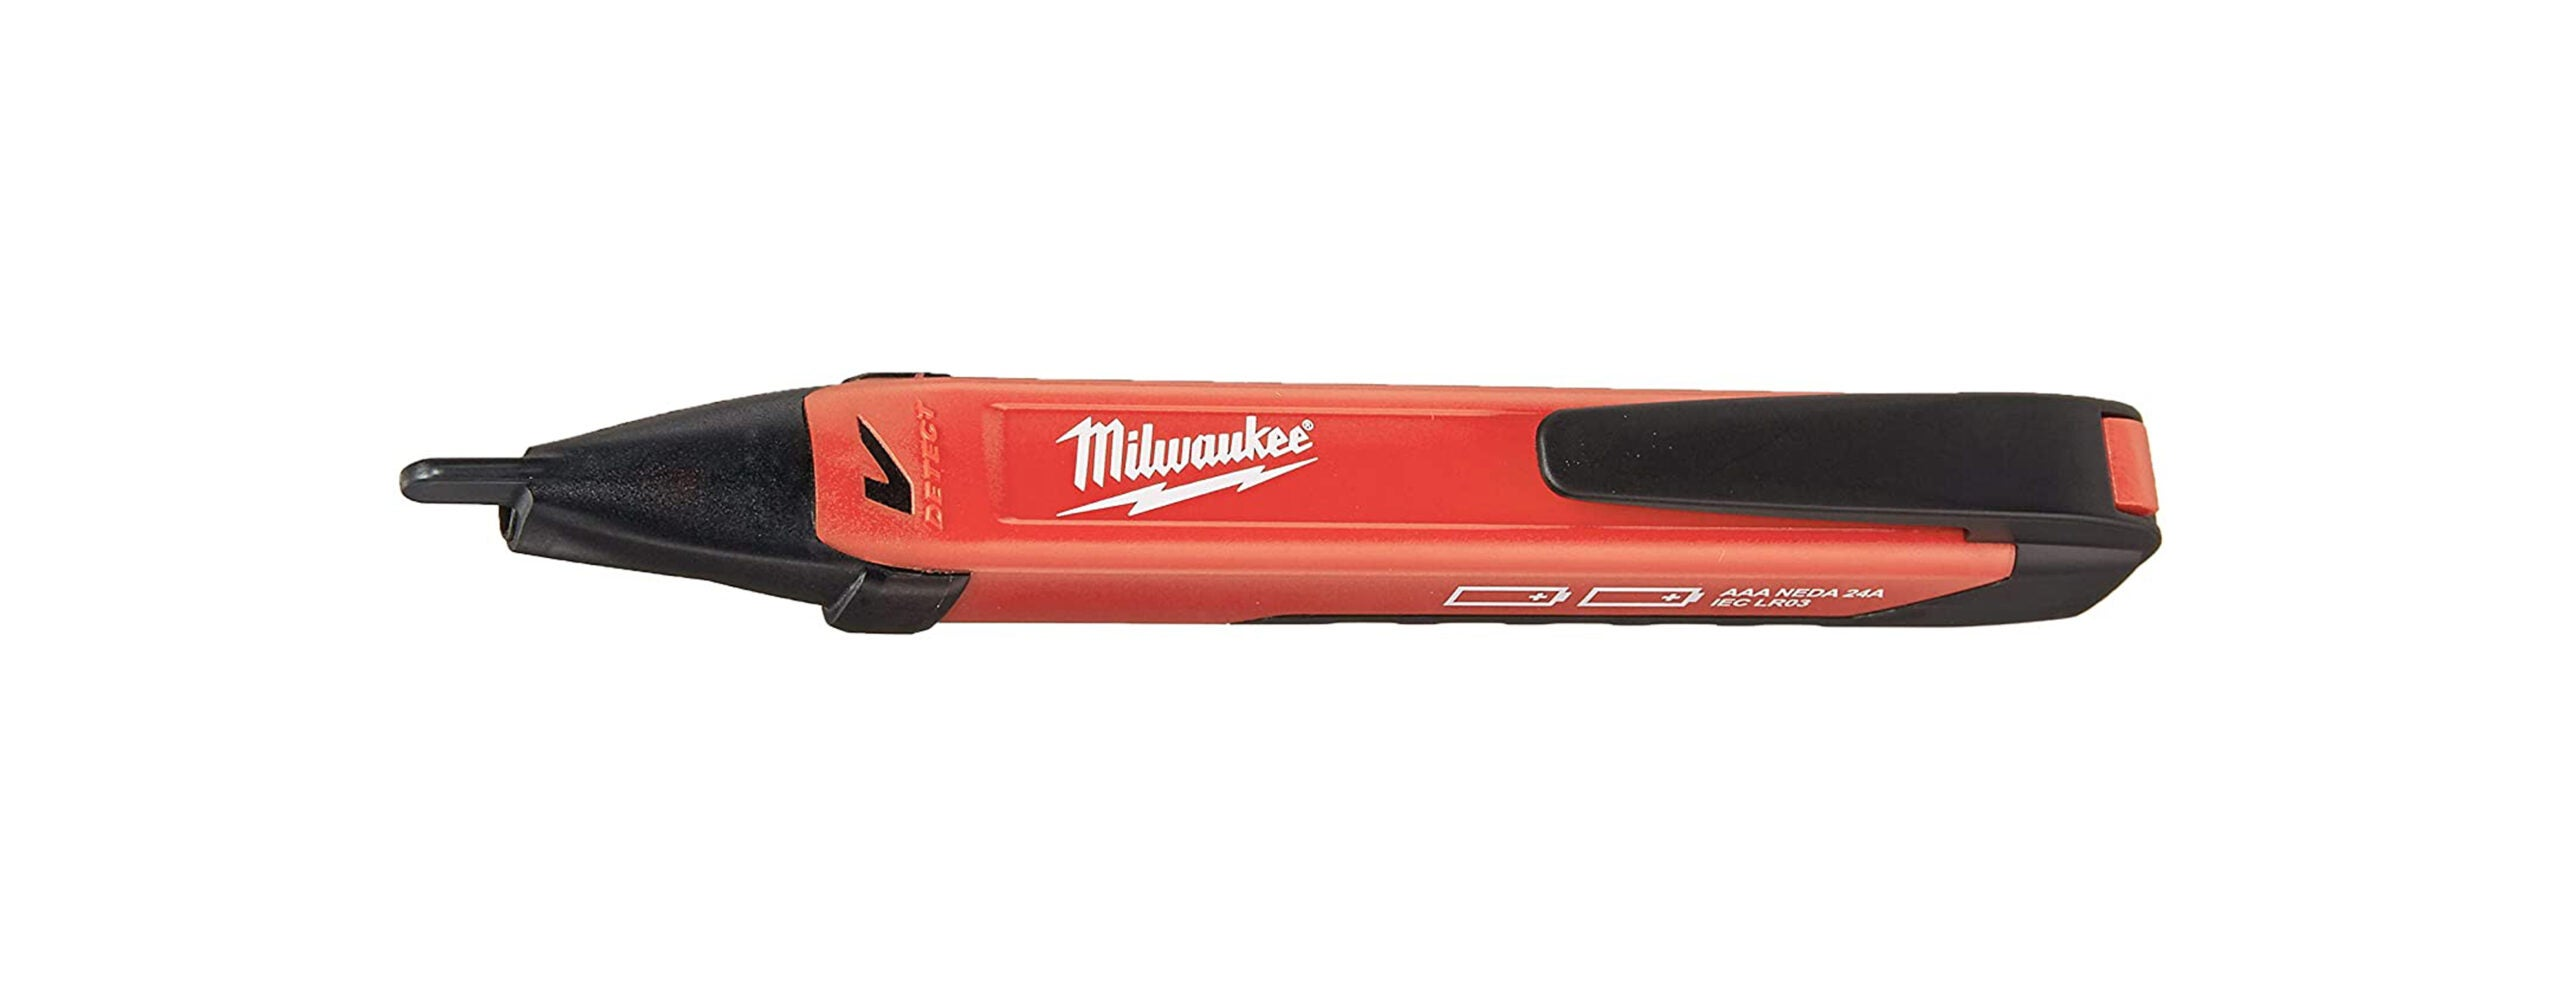 The Best Milwaukee Hand Tools (Review & Buying Guide) in 2021